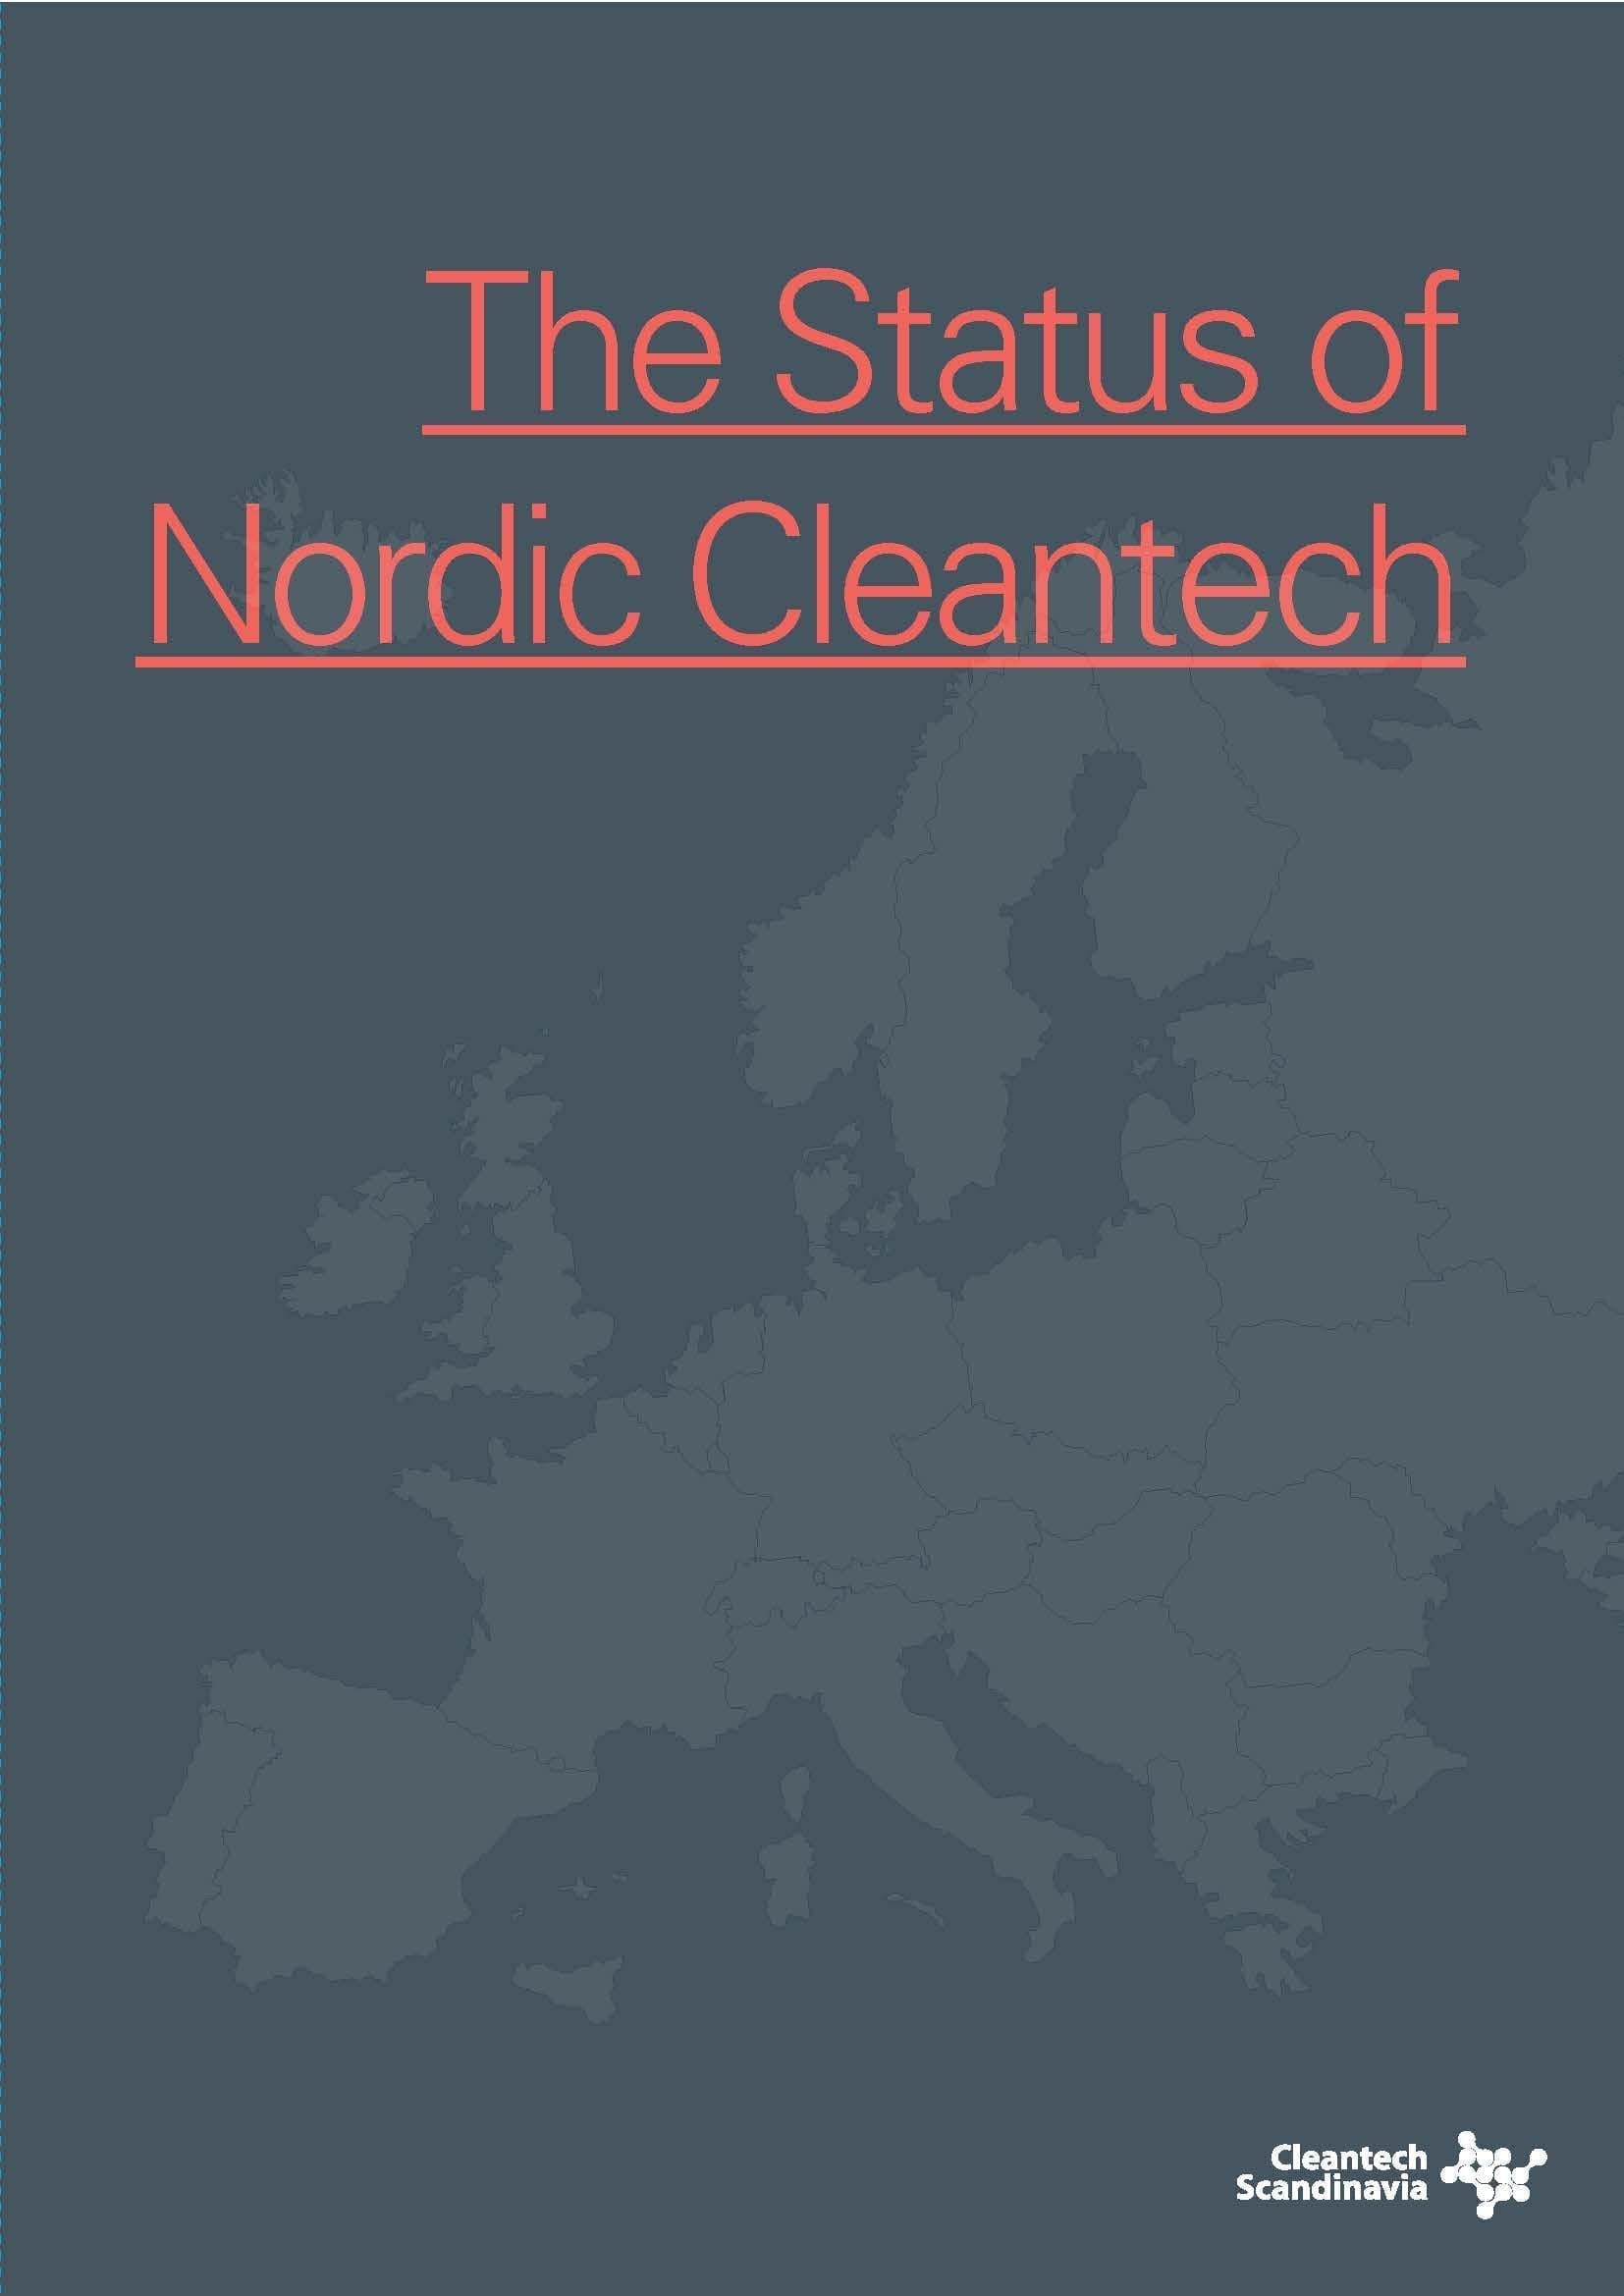 The Status of Nordic Cleantech